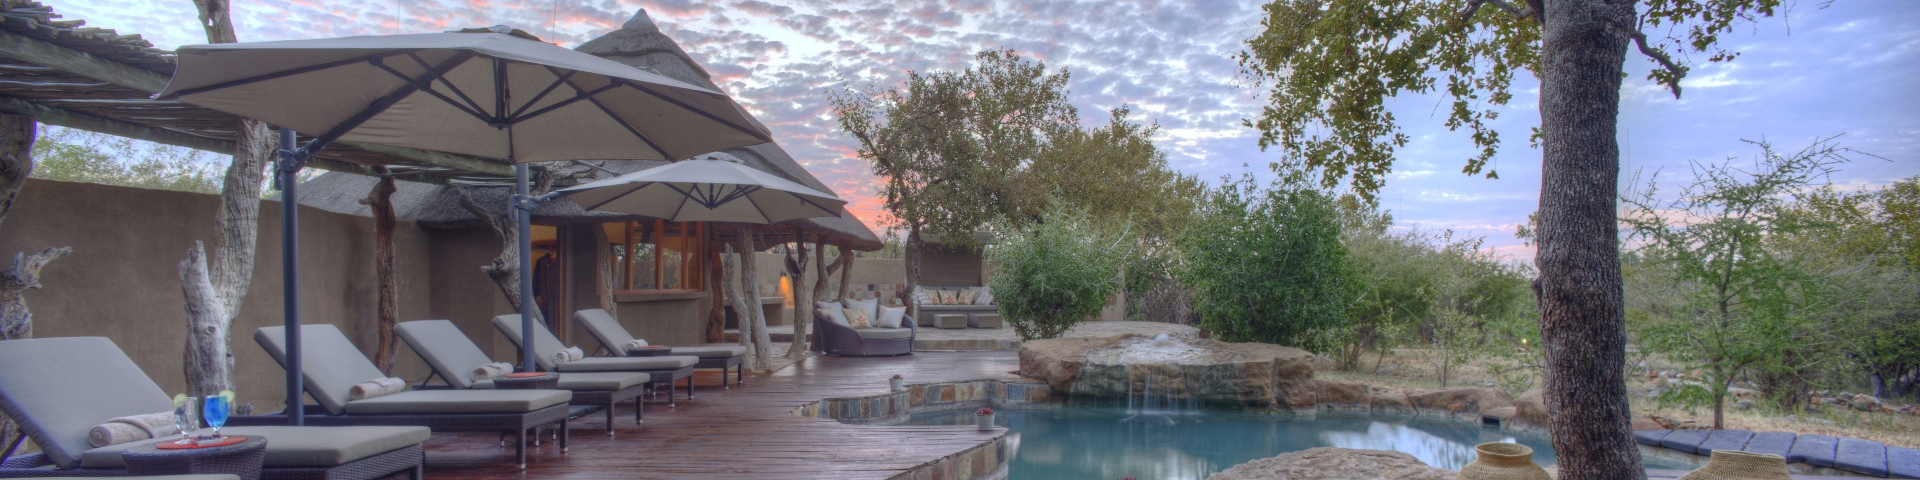 Rhulani Safari Lodge - Madikwe Game Reserve - South Africa